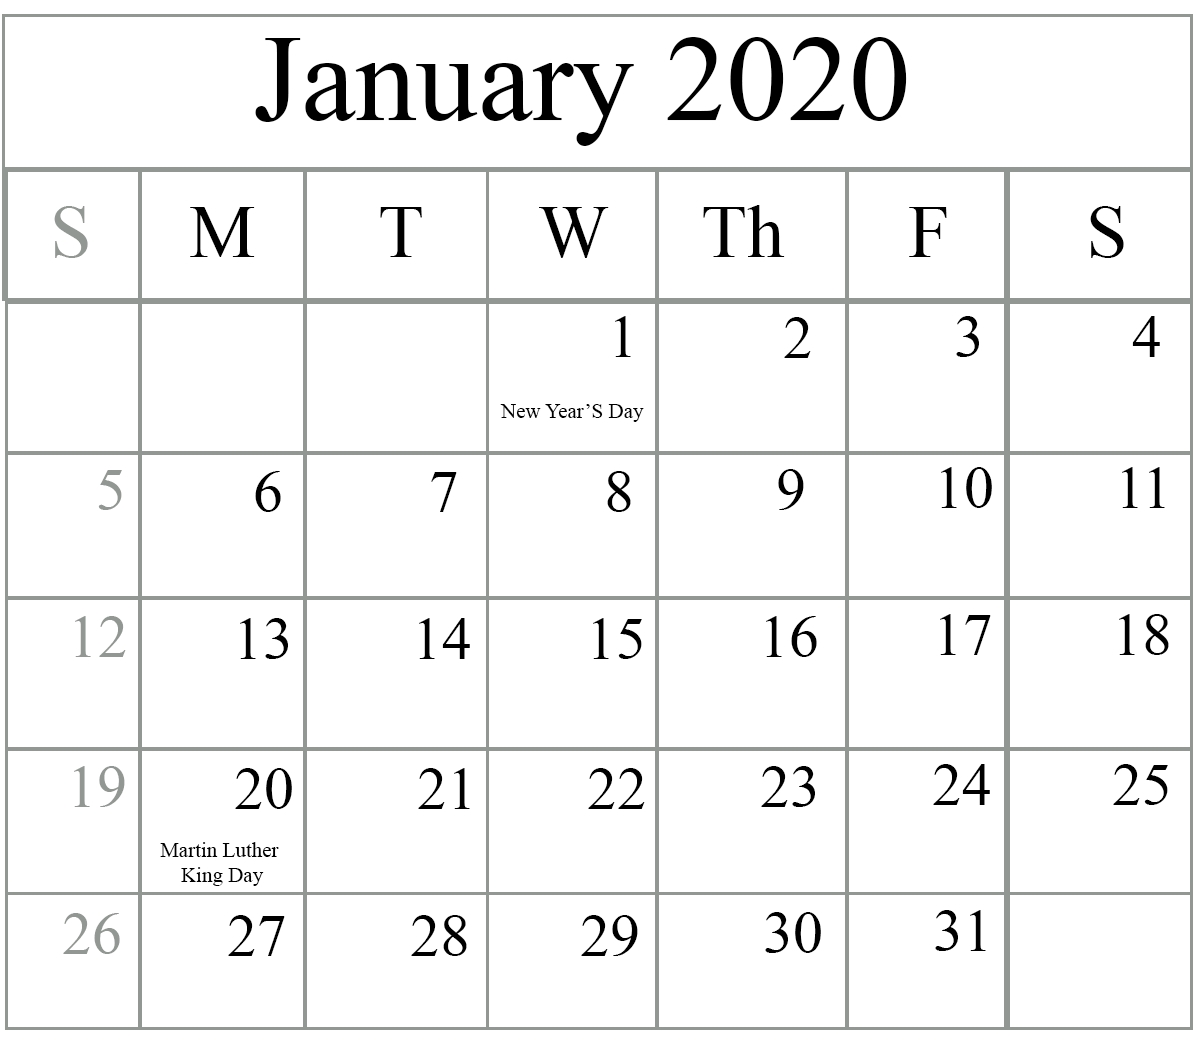 Free January 2020 Printable Calendar In Pdf, Excel & Word-January 2020 Calendar Template